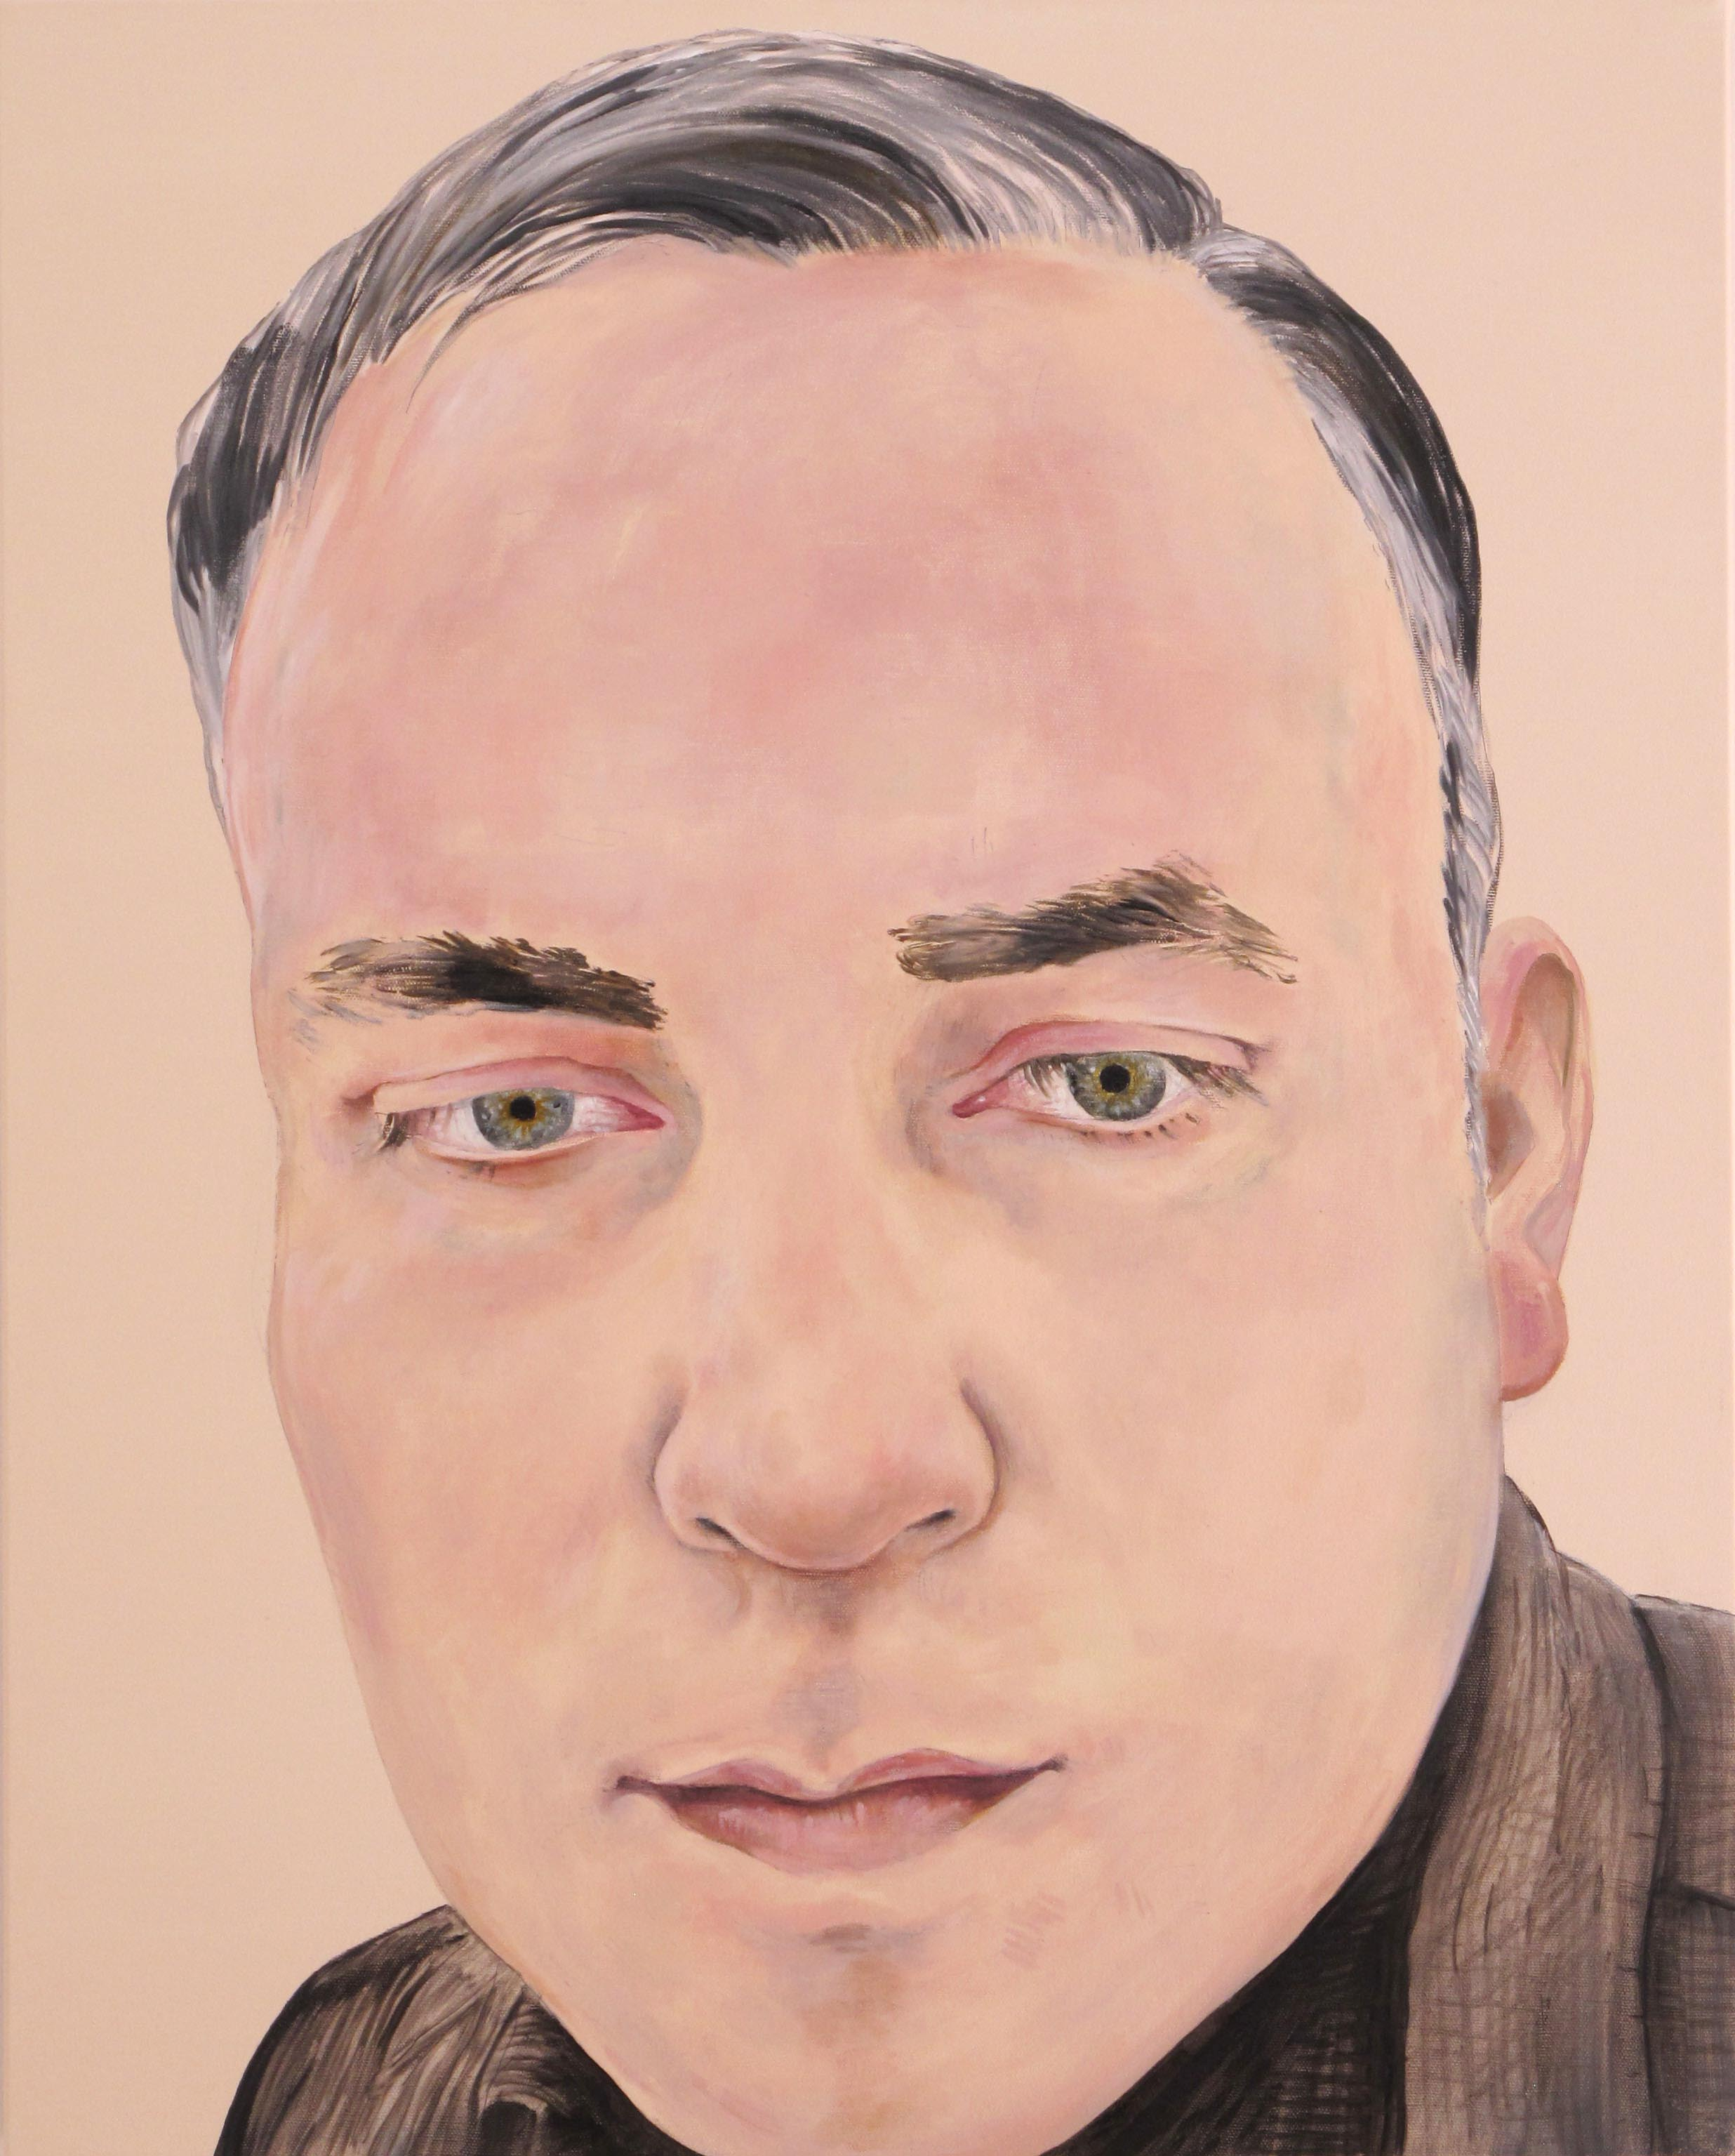 Noah Becker   Self Portrait #2,  2014 Oil on canvas 24 x 30""